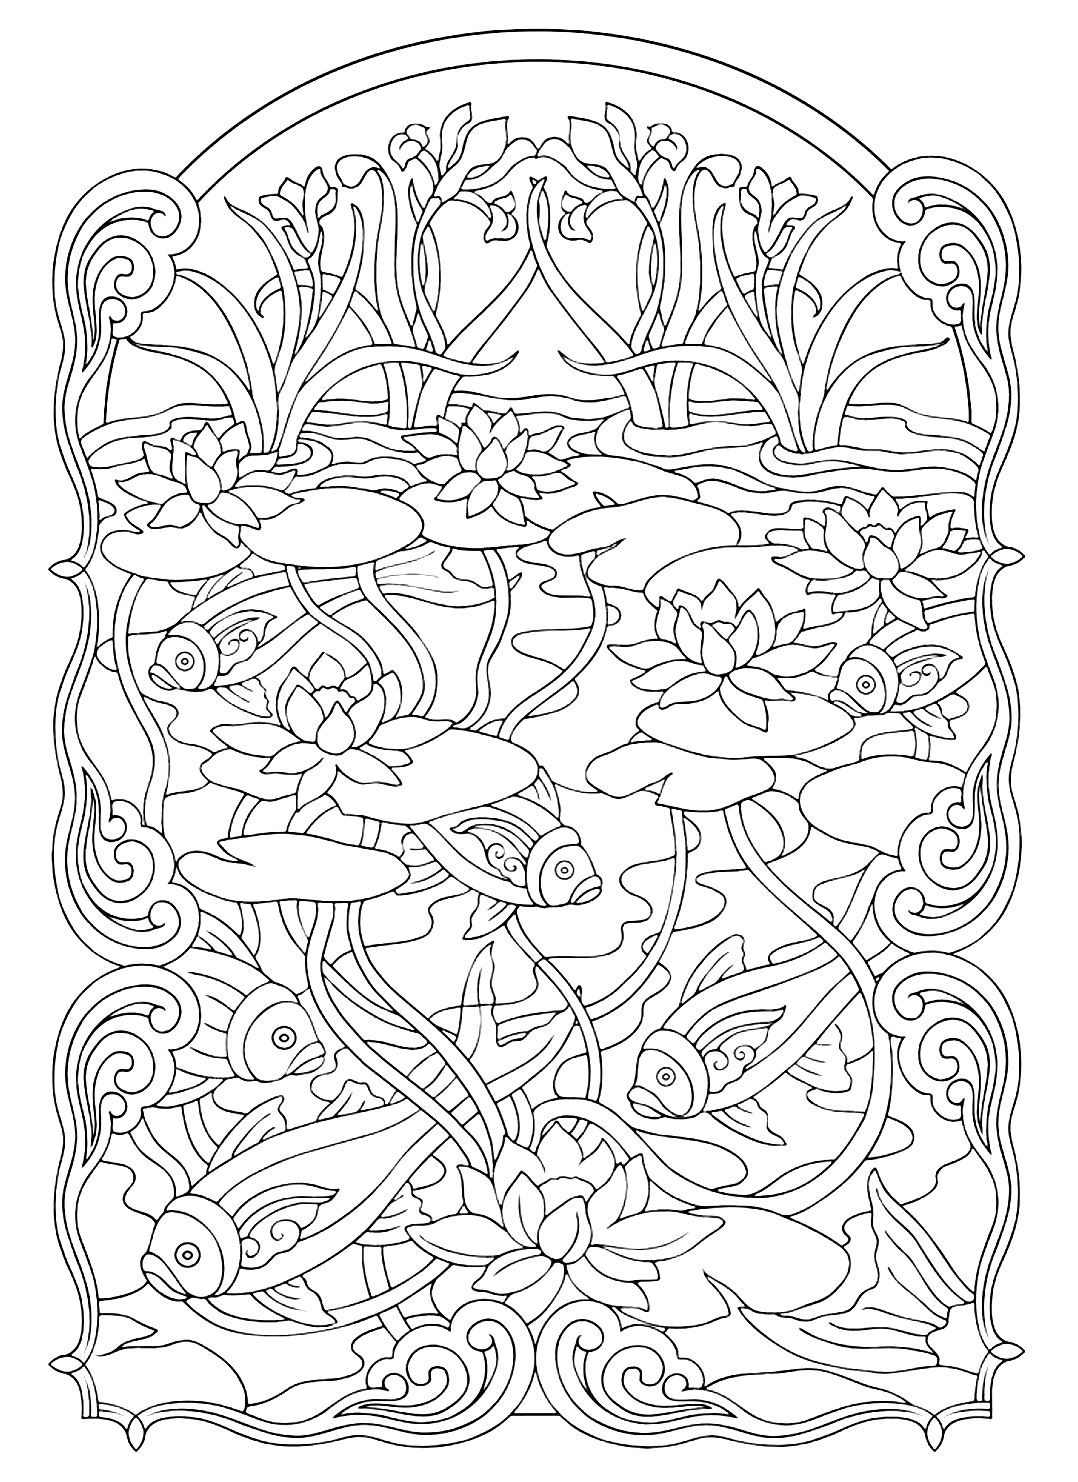 Free Coloring Pages Pond Animals : Free coloring pages pond animals duck